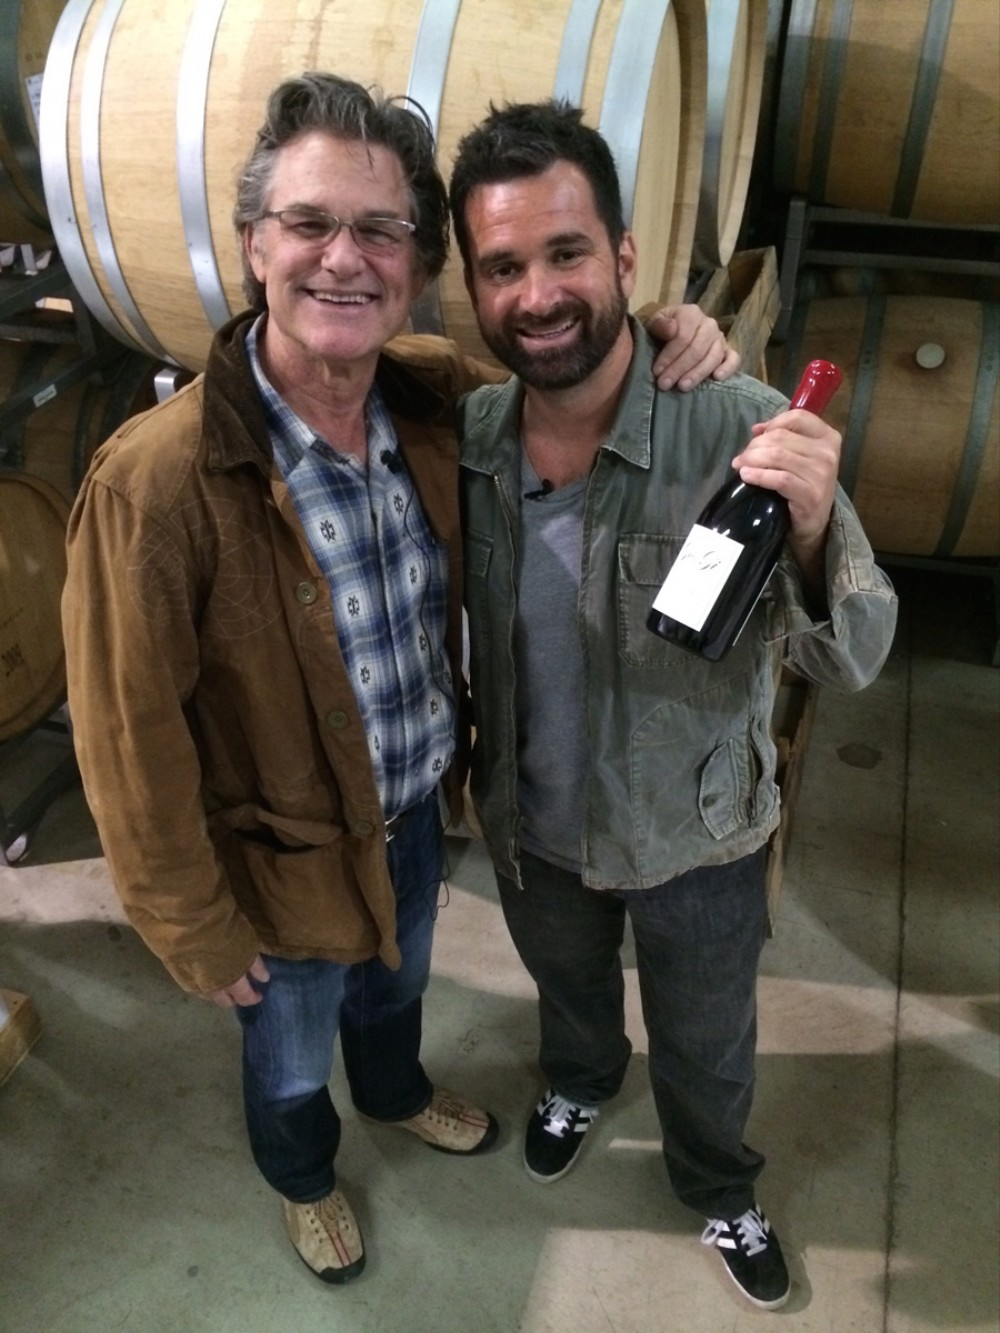 Meet the Professional Wino Who Drank His Way Across the US